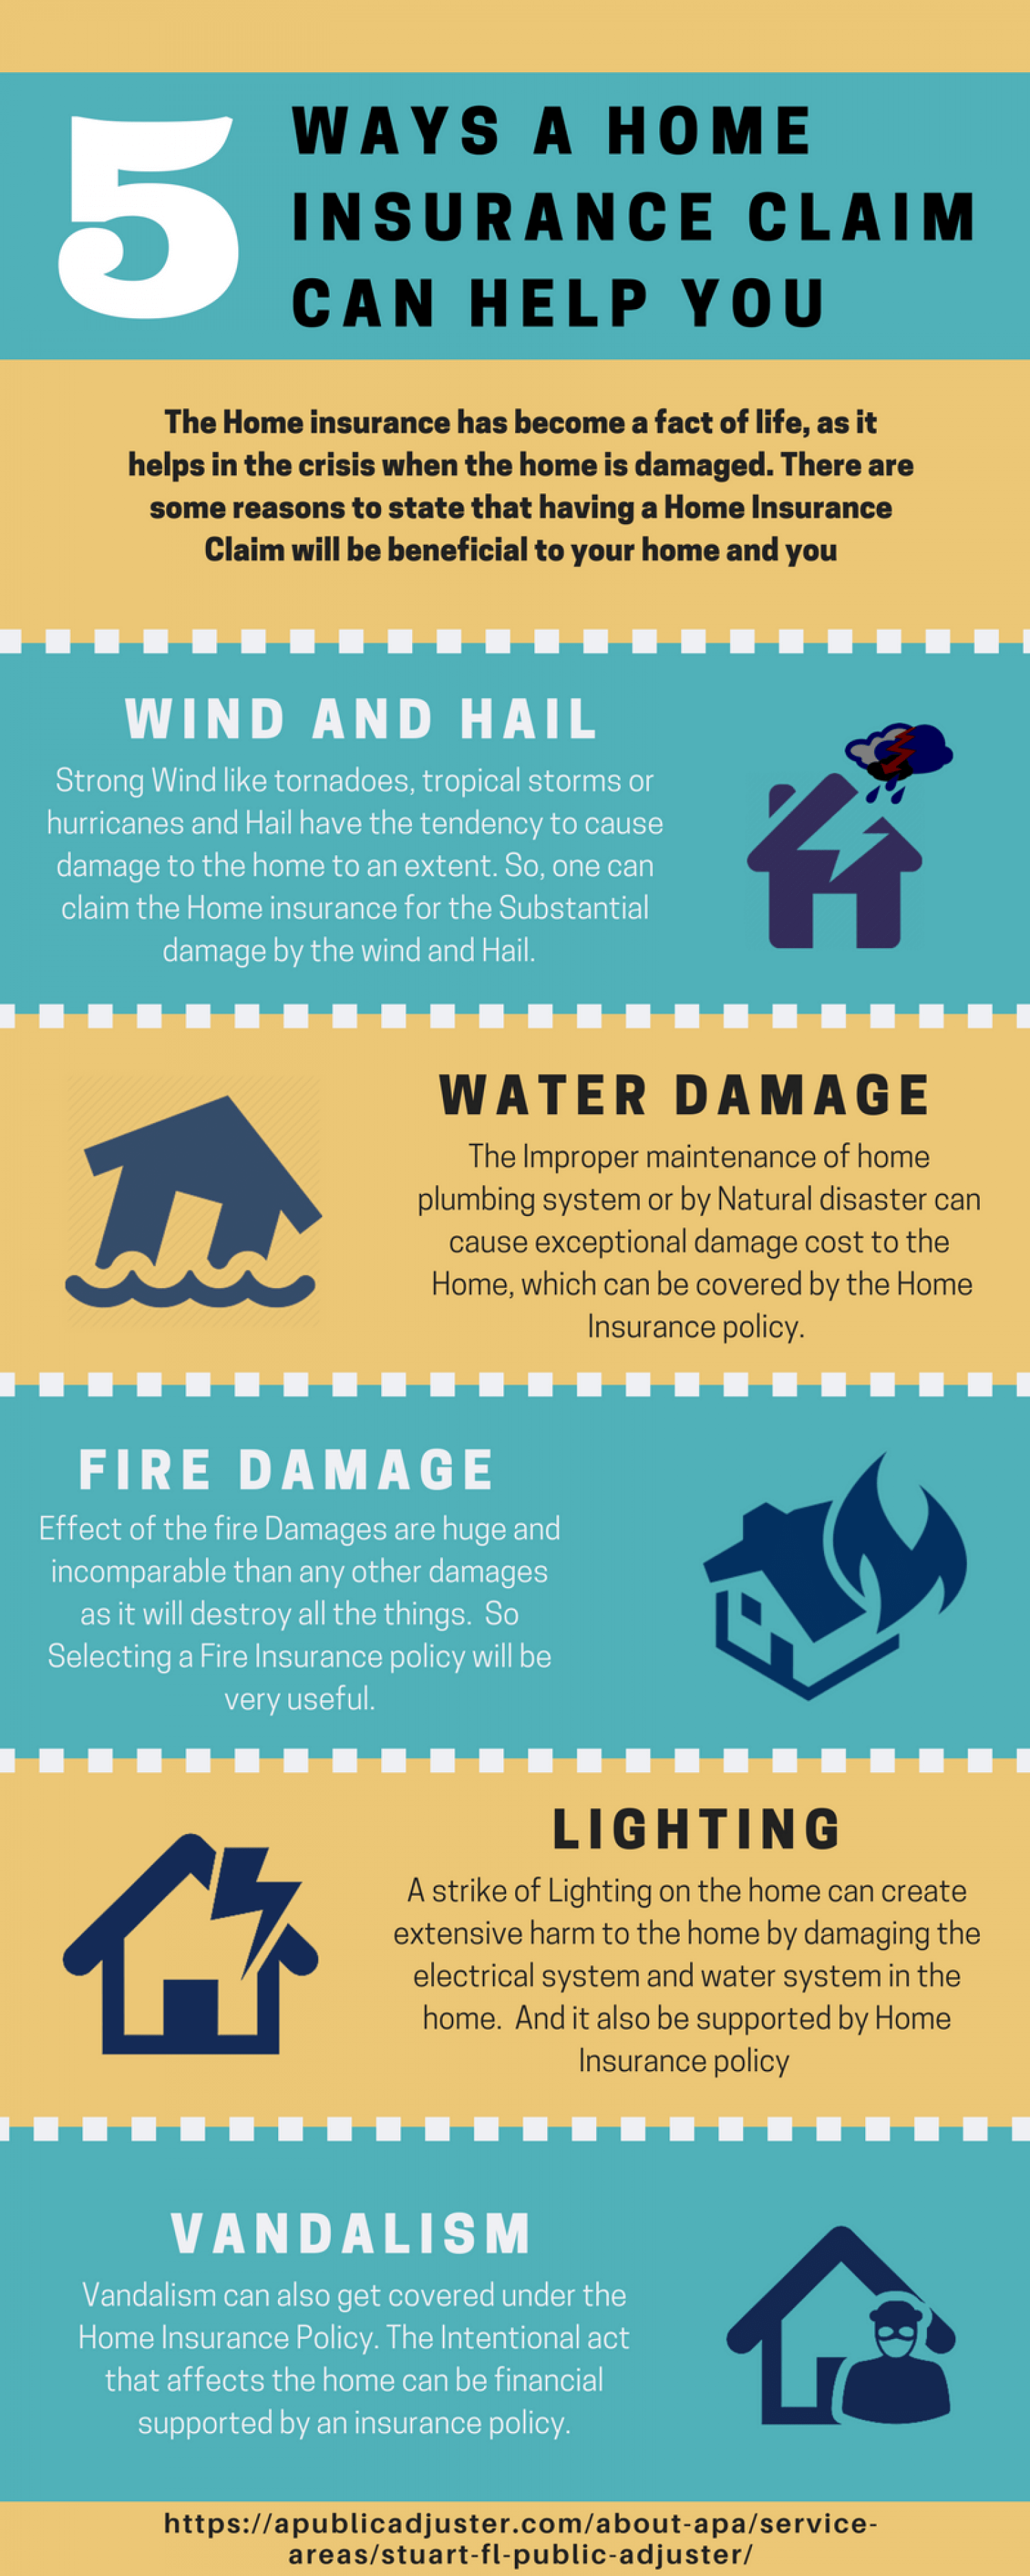 Five Ways a Home Insurance Claim can help you